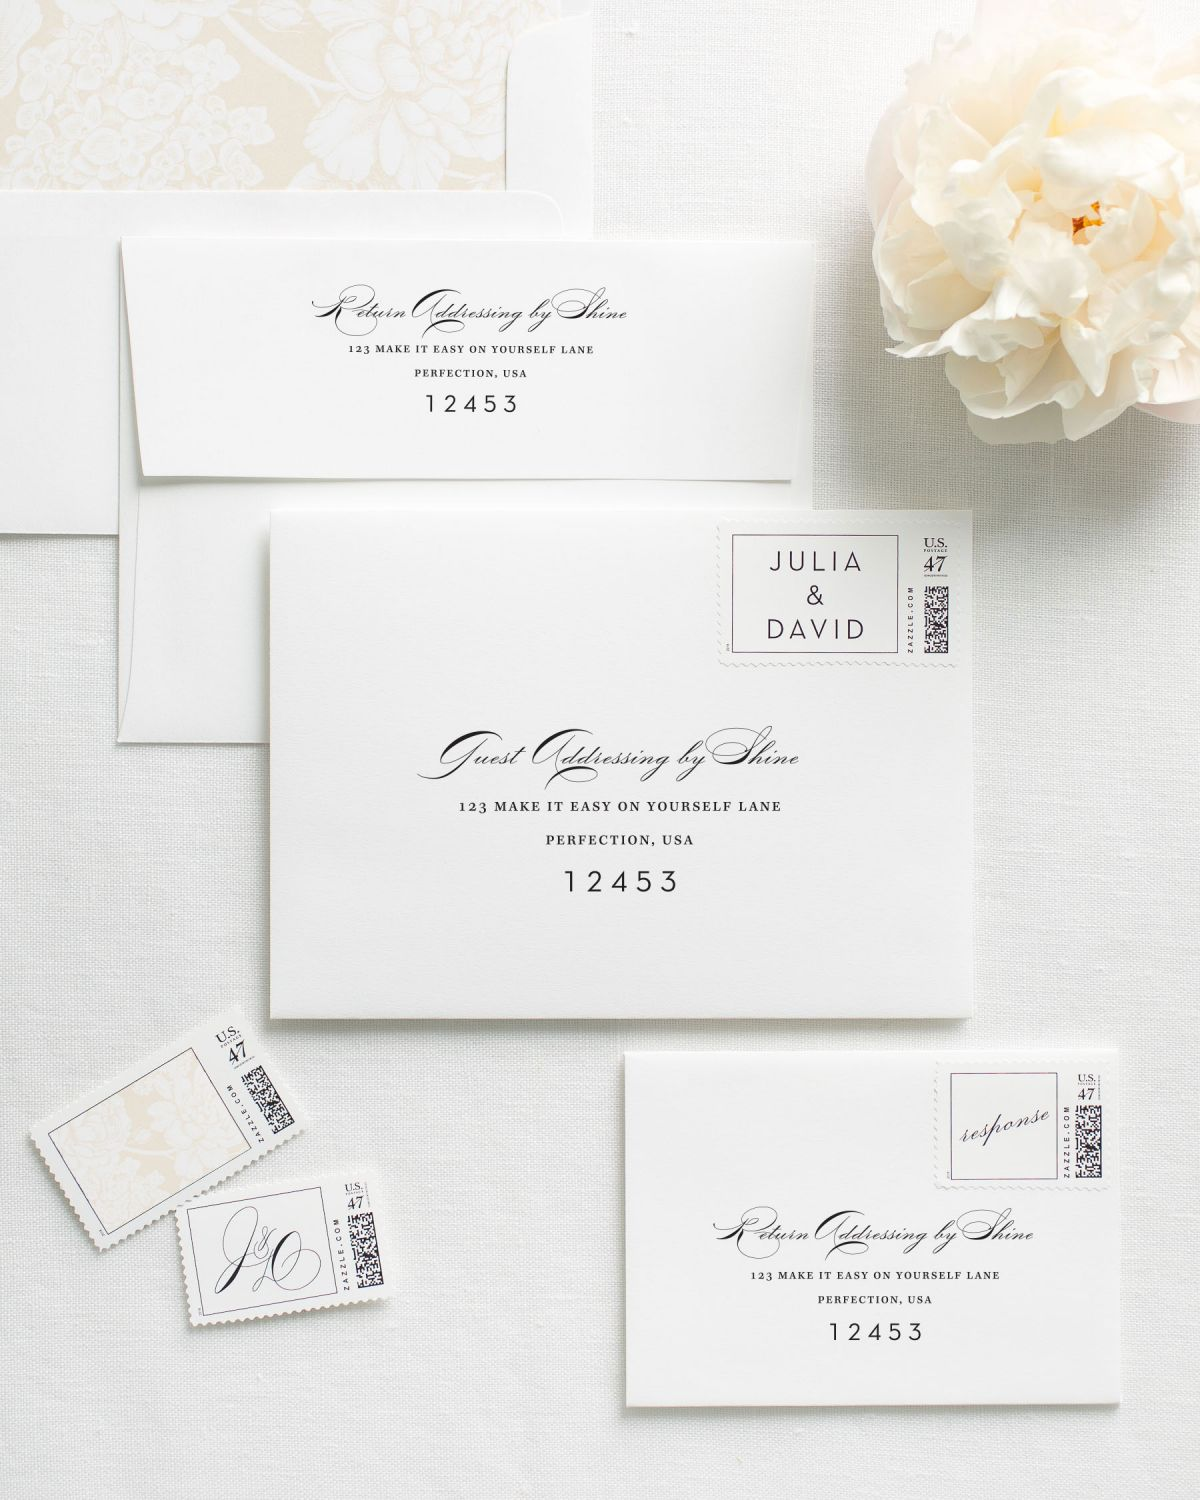 Vintage glam letterpress wedding invitations letterpress wedding wedding invitation envelopes with printed addresses and matching stamps letterpress wedding invitation diagram solutioingenieria Choice Image